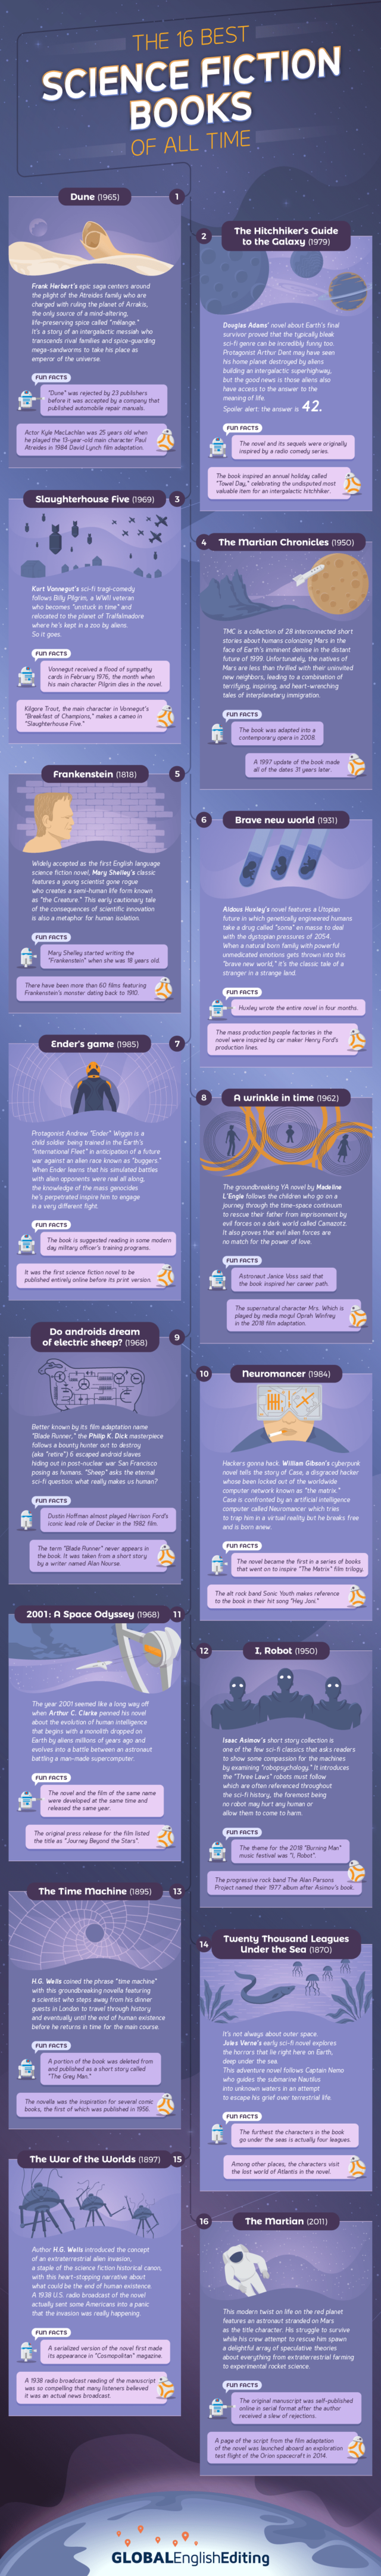 Infographic – The 16 Best Science Fiction Books of All Time | Book Patrol